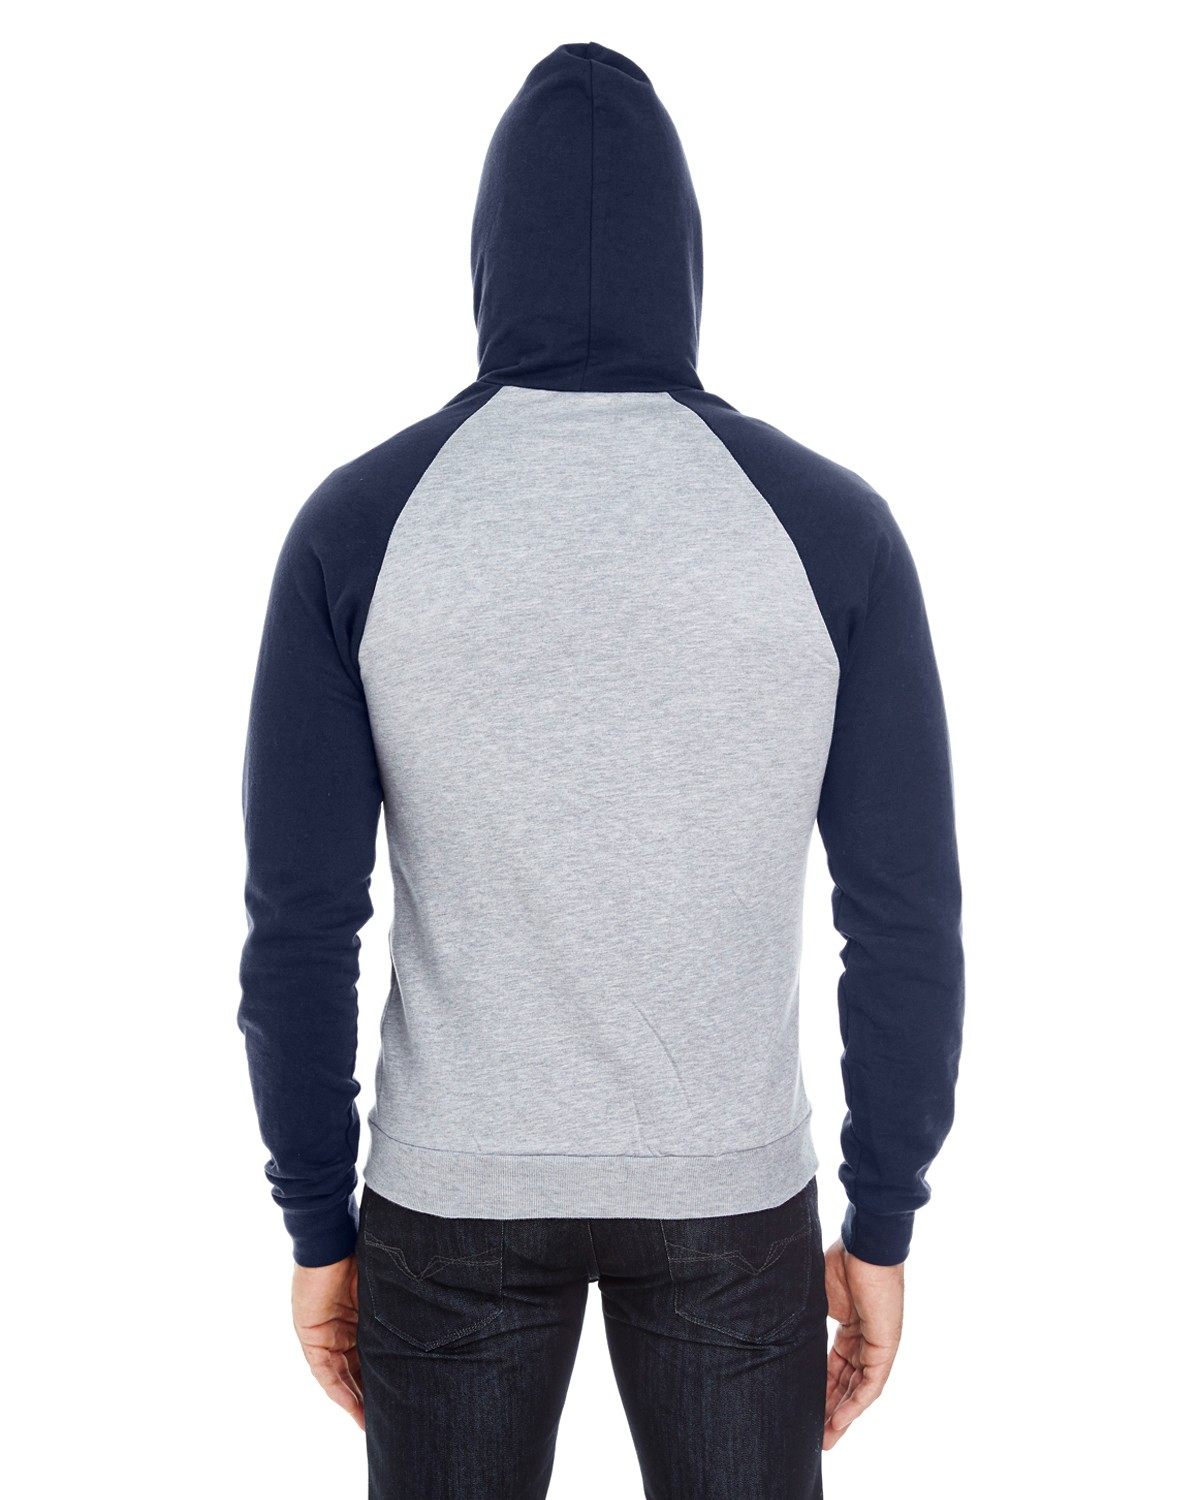 5497W American Apparel HTHR GREY/NAVY